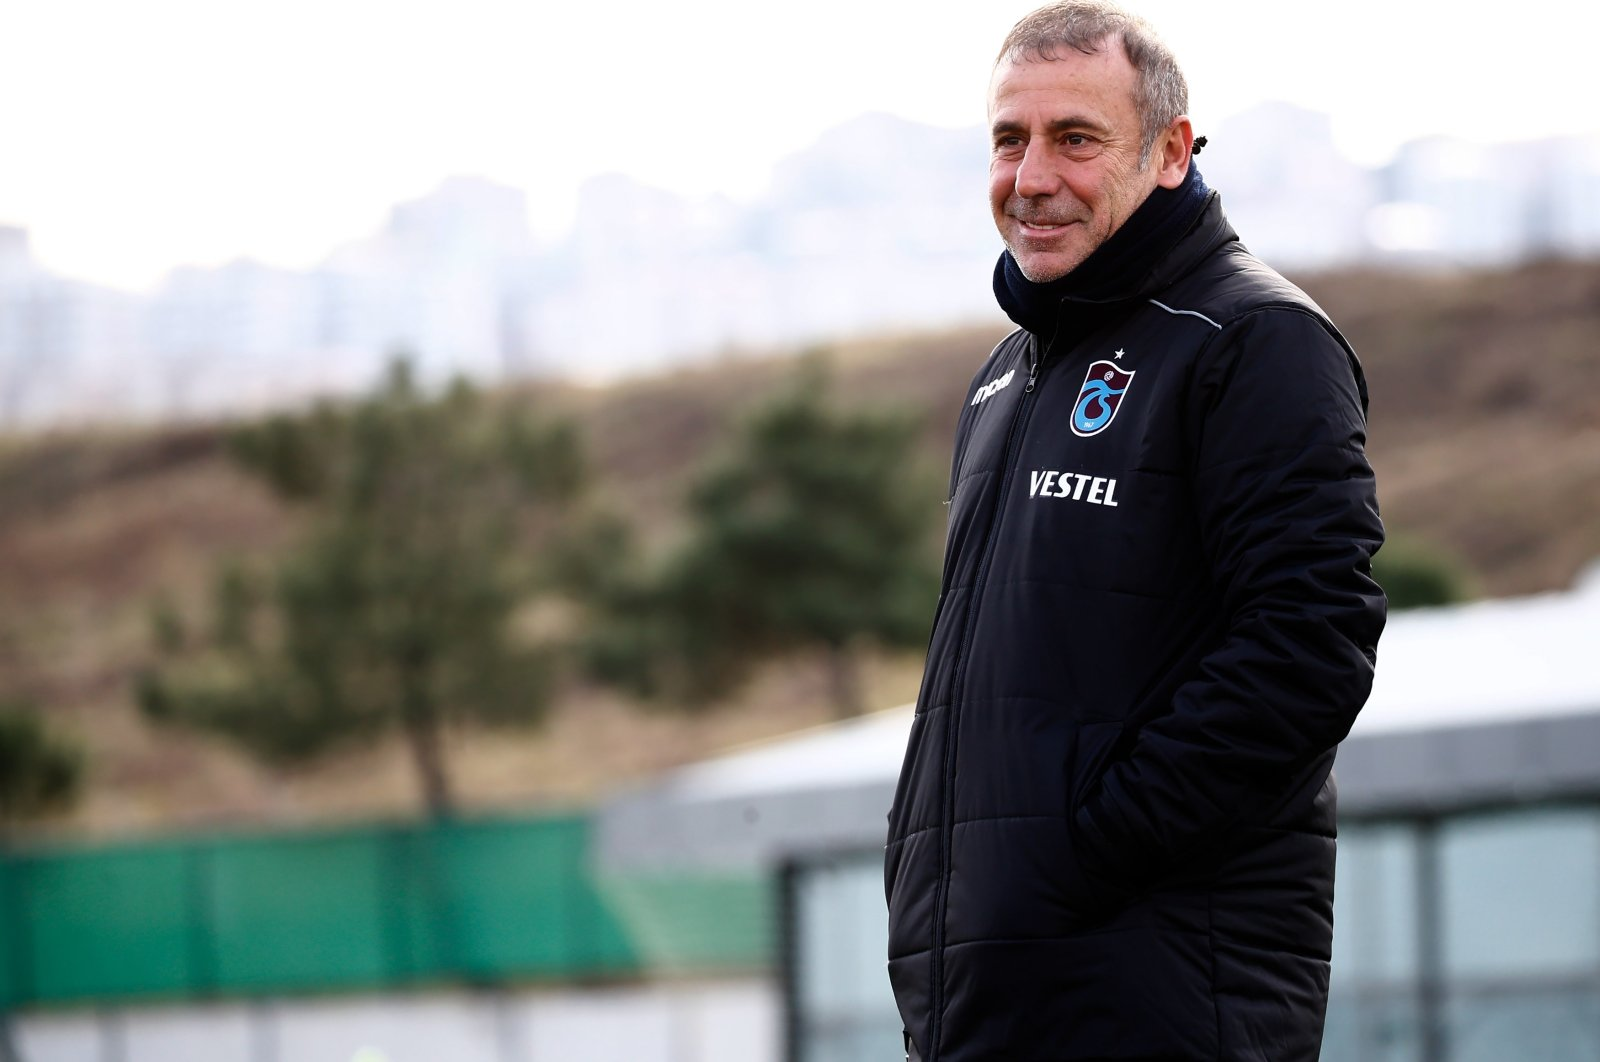 Trabzonspor manager Abdullah Avcı's defensive game plan will face a tough test when his side takes on league leaders Beşiktaş later this weekend.